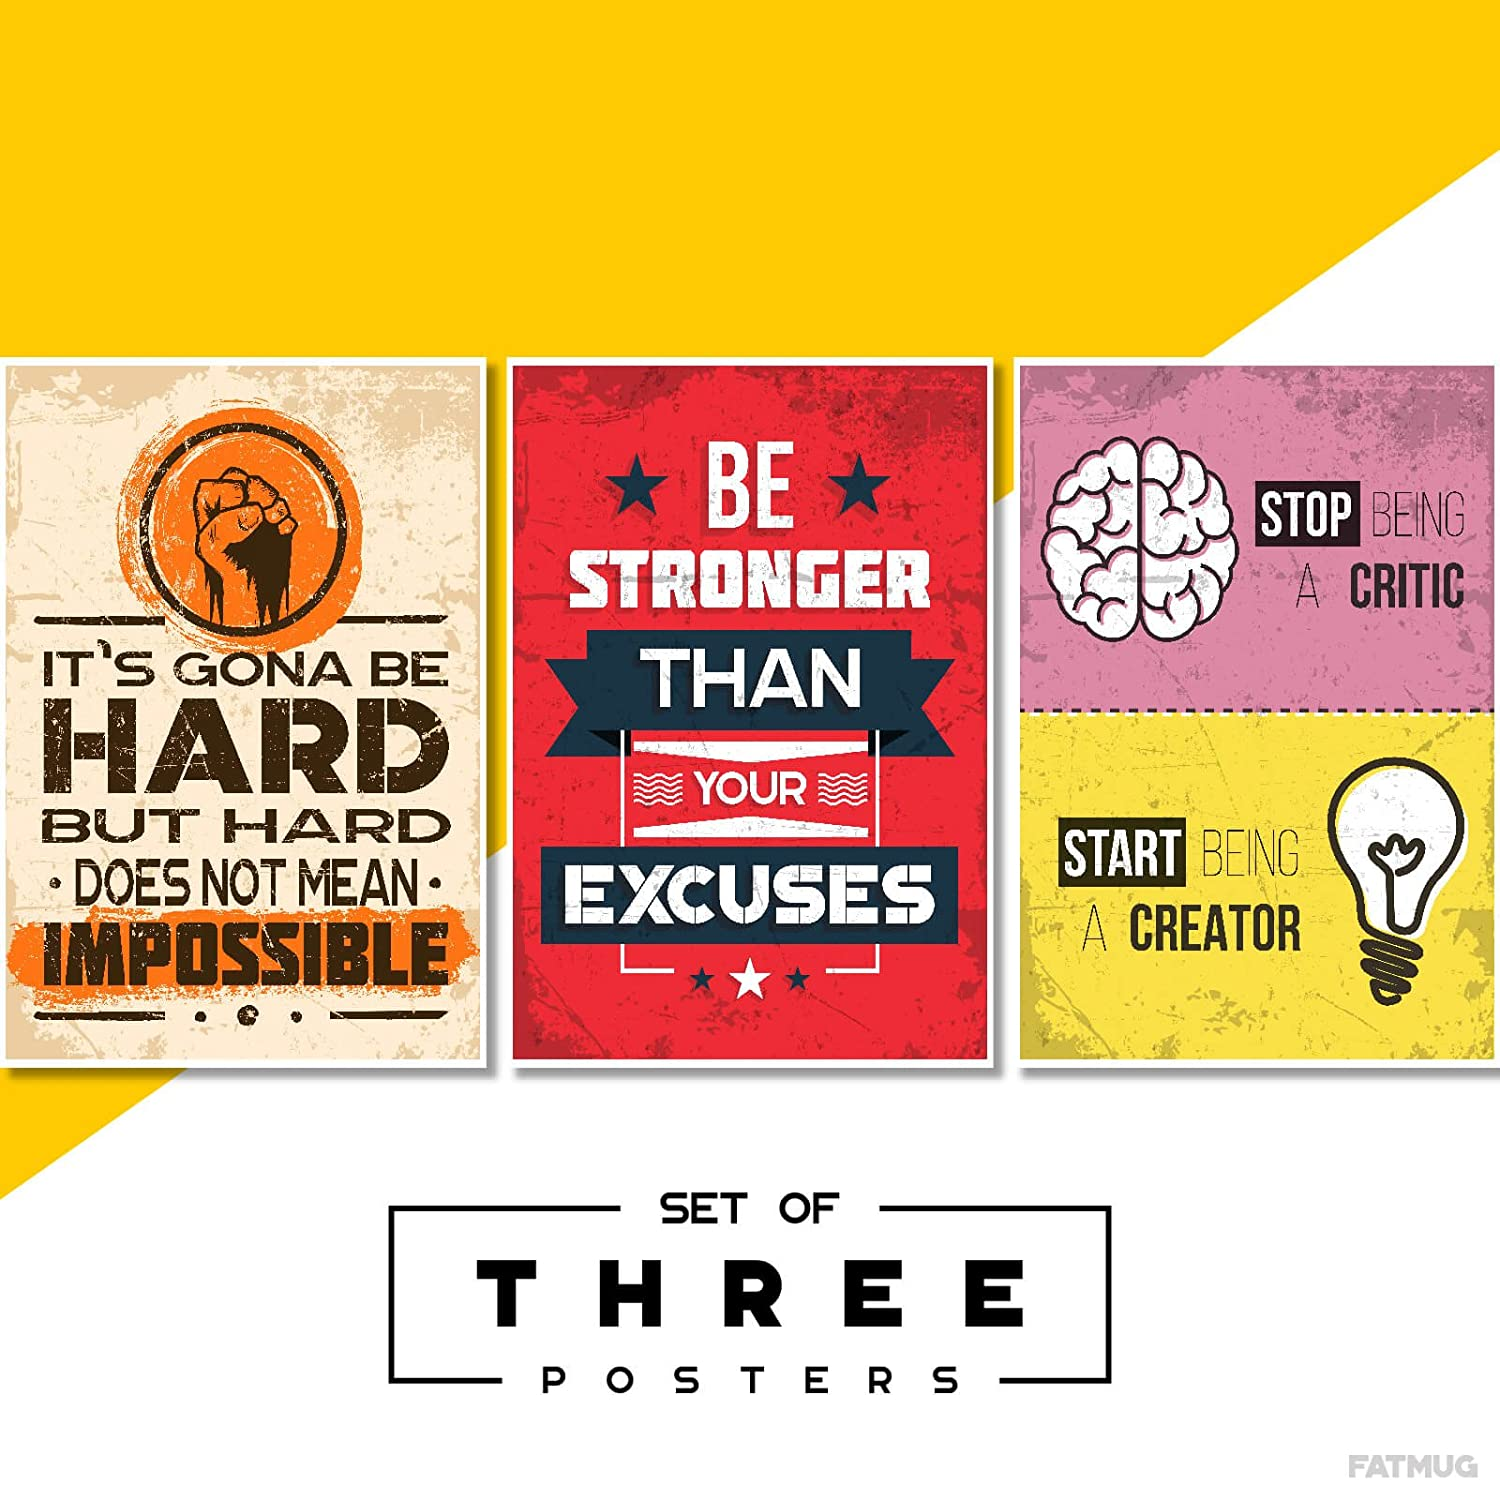 Motivational Posters For Office And Study Room - Set of 3 - 13x19 in - Inspirational Wall Quotes Q6